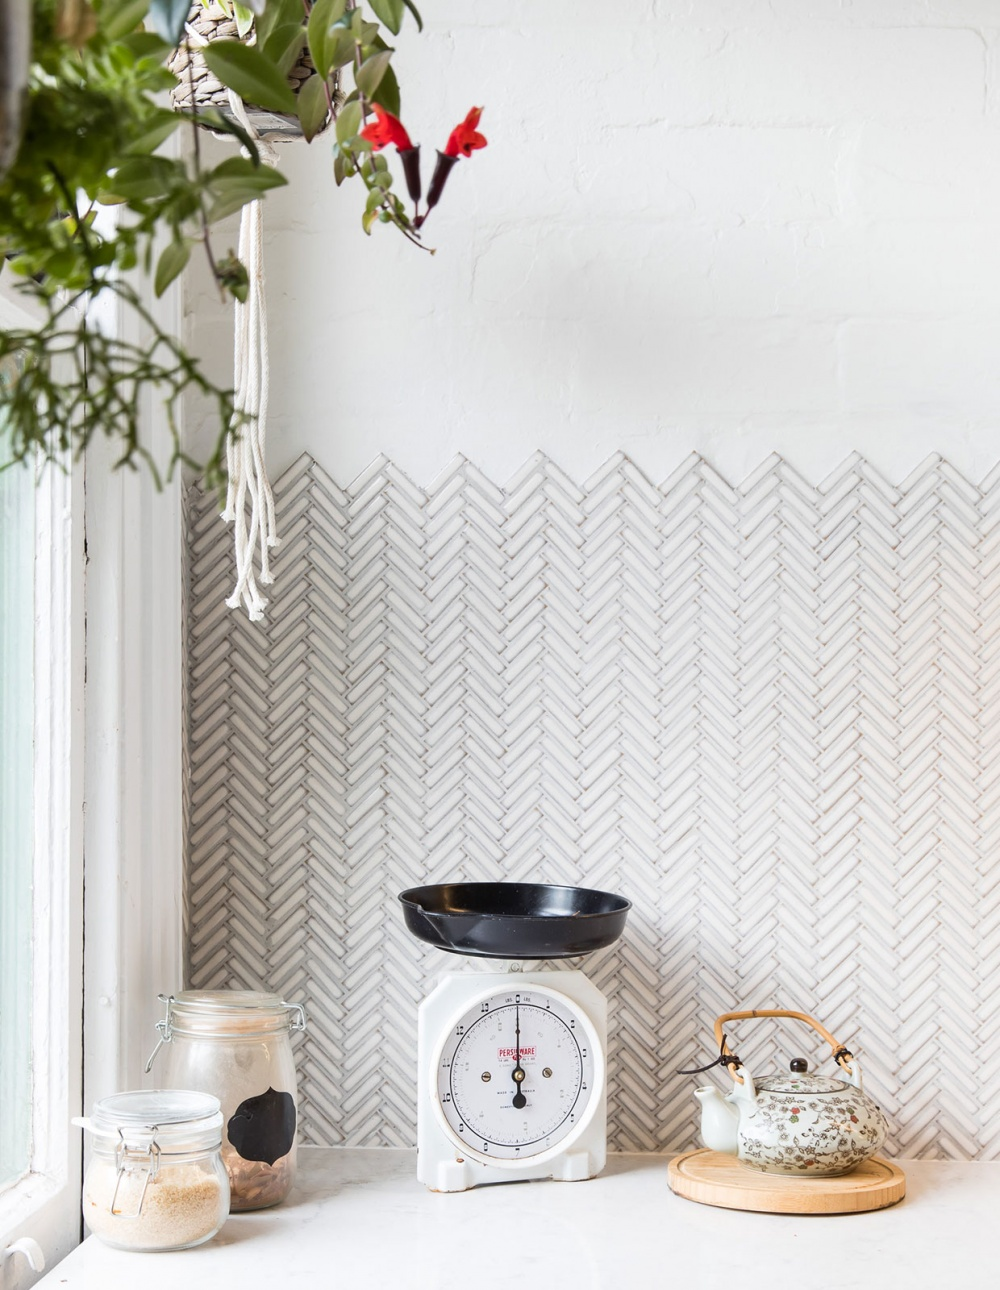 Tiny herringbone tiles with unfinished zigzag edge, lovely. An artist's home, photo credit:  The Design Files